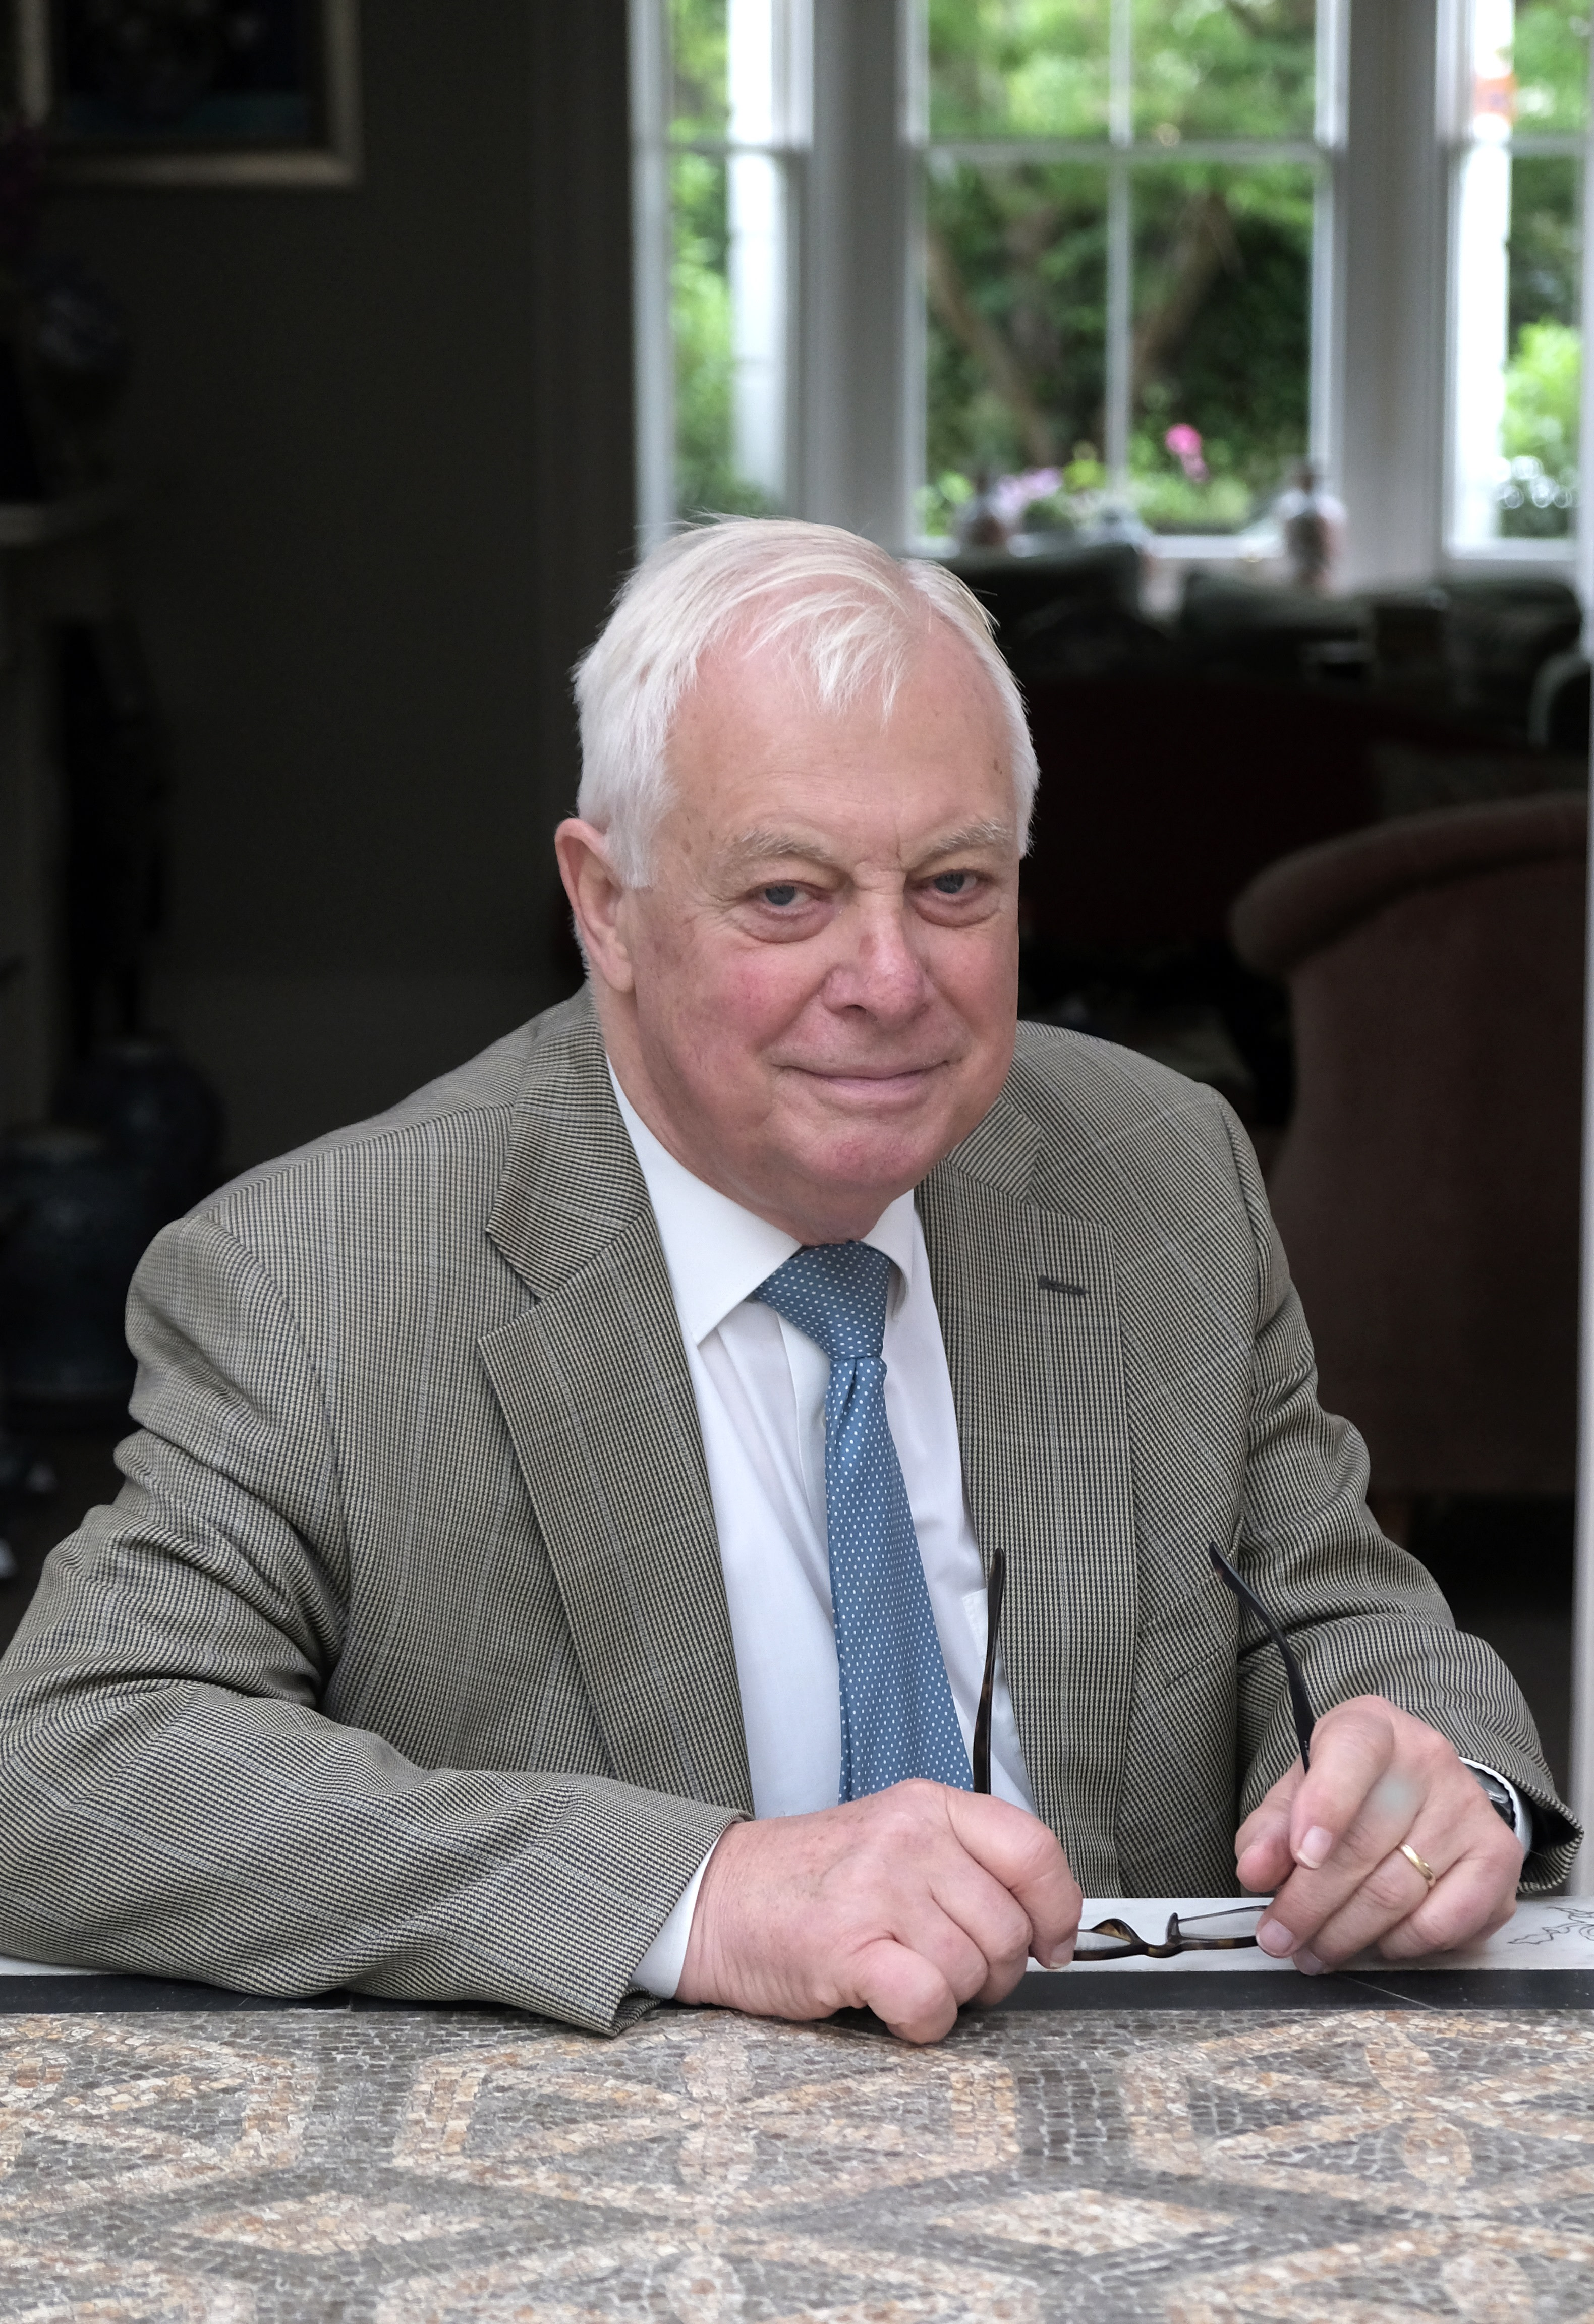 The Right Honourable Christopher Patten